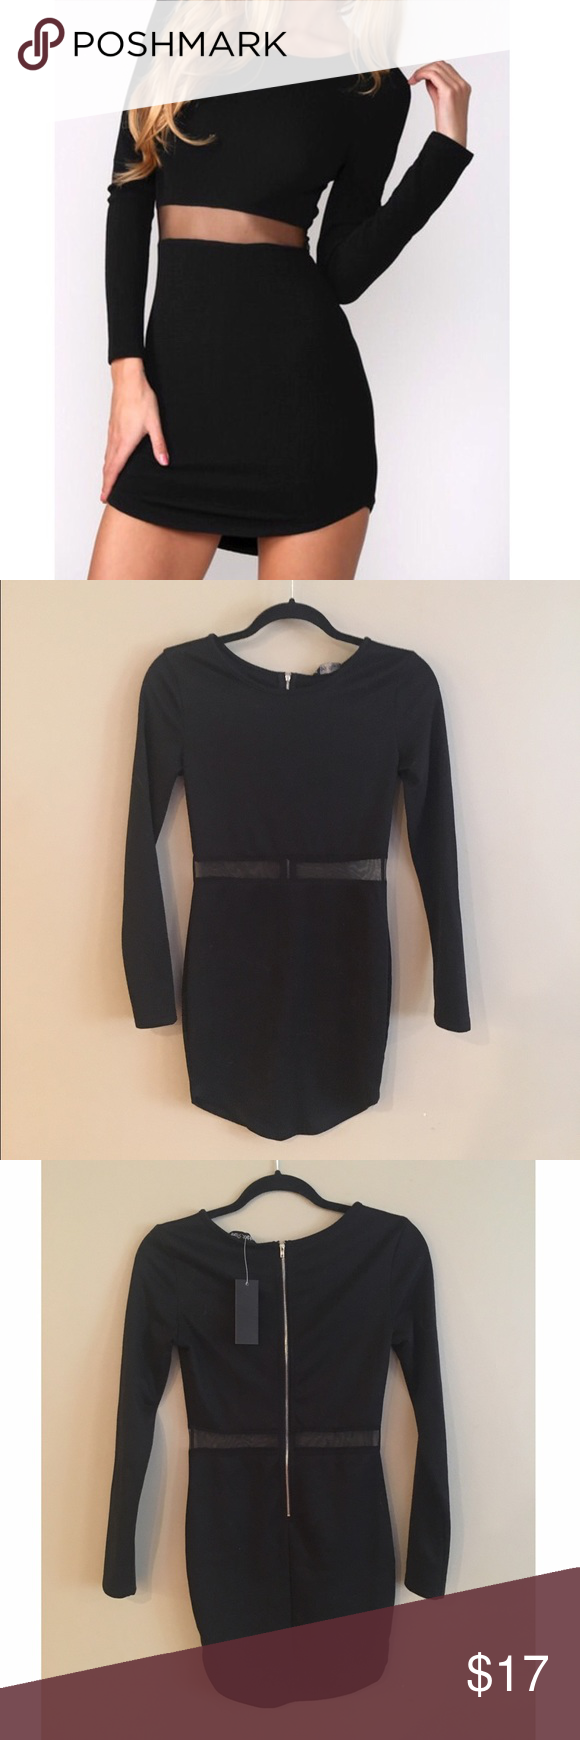 Black mesh cut out dress fitted long sleeve black dress zip closure